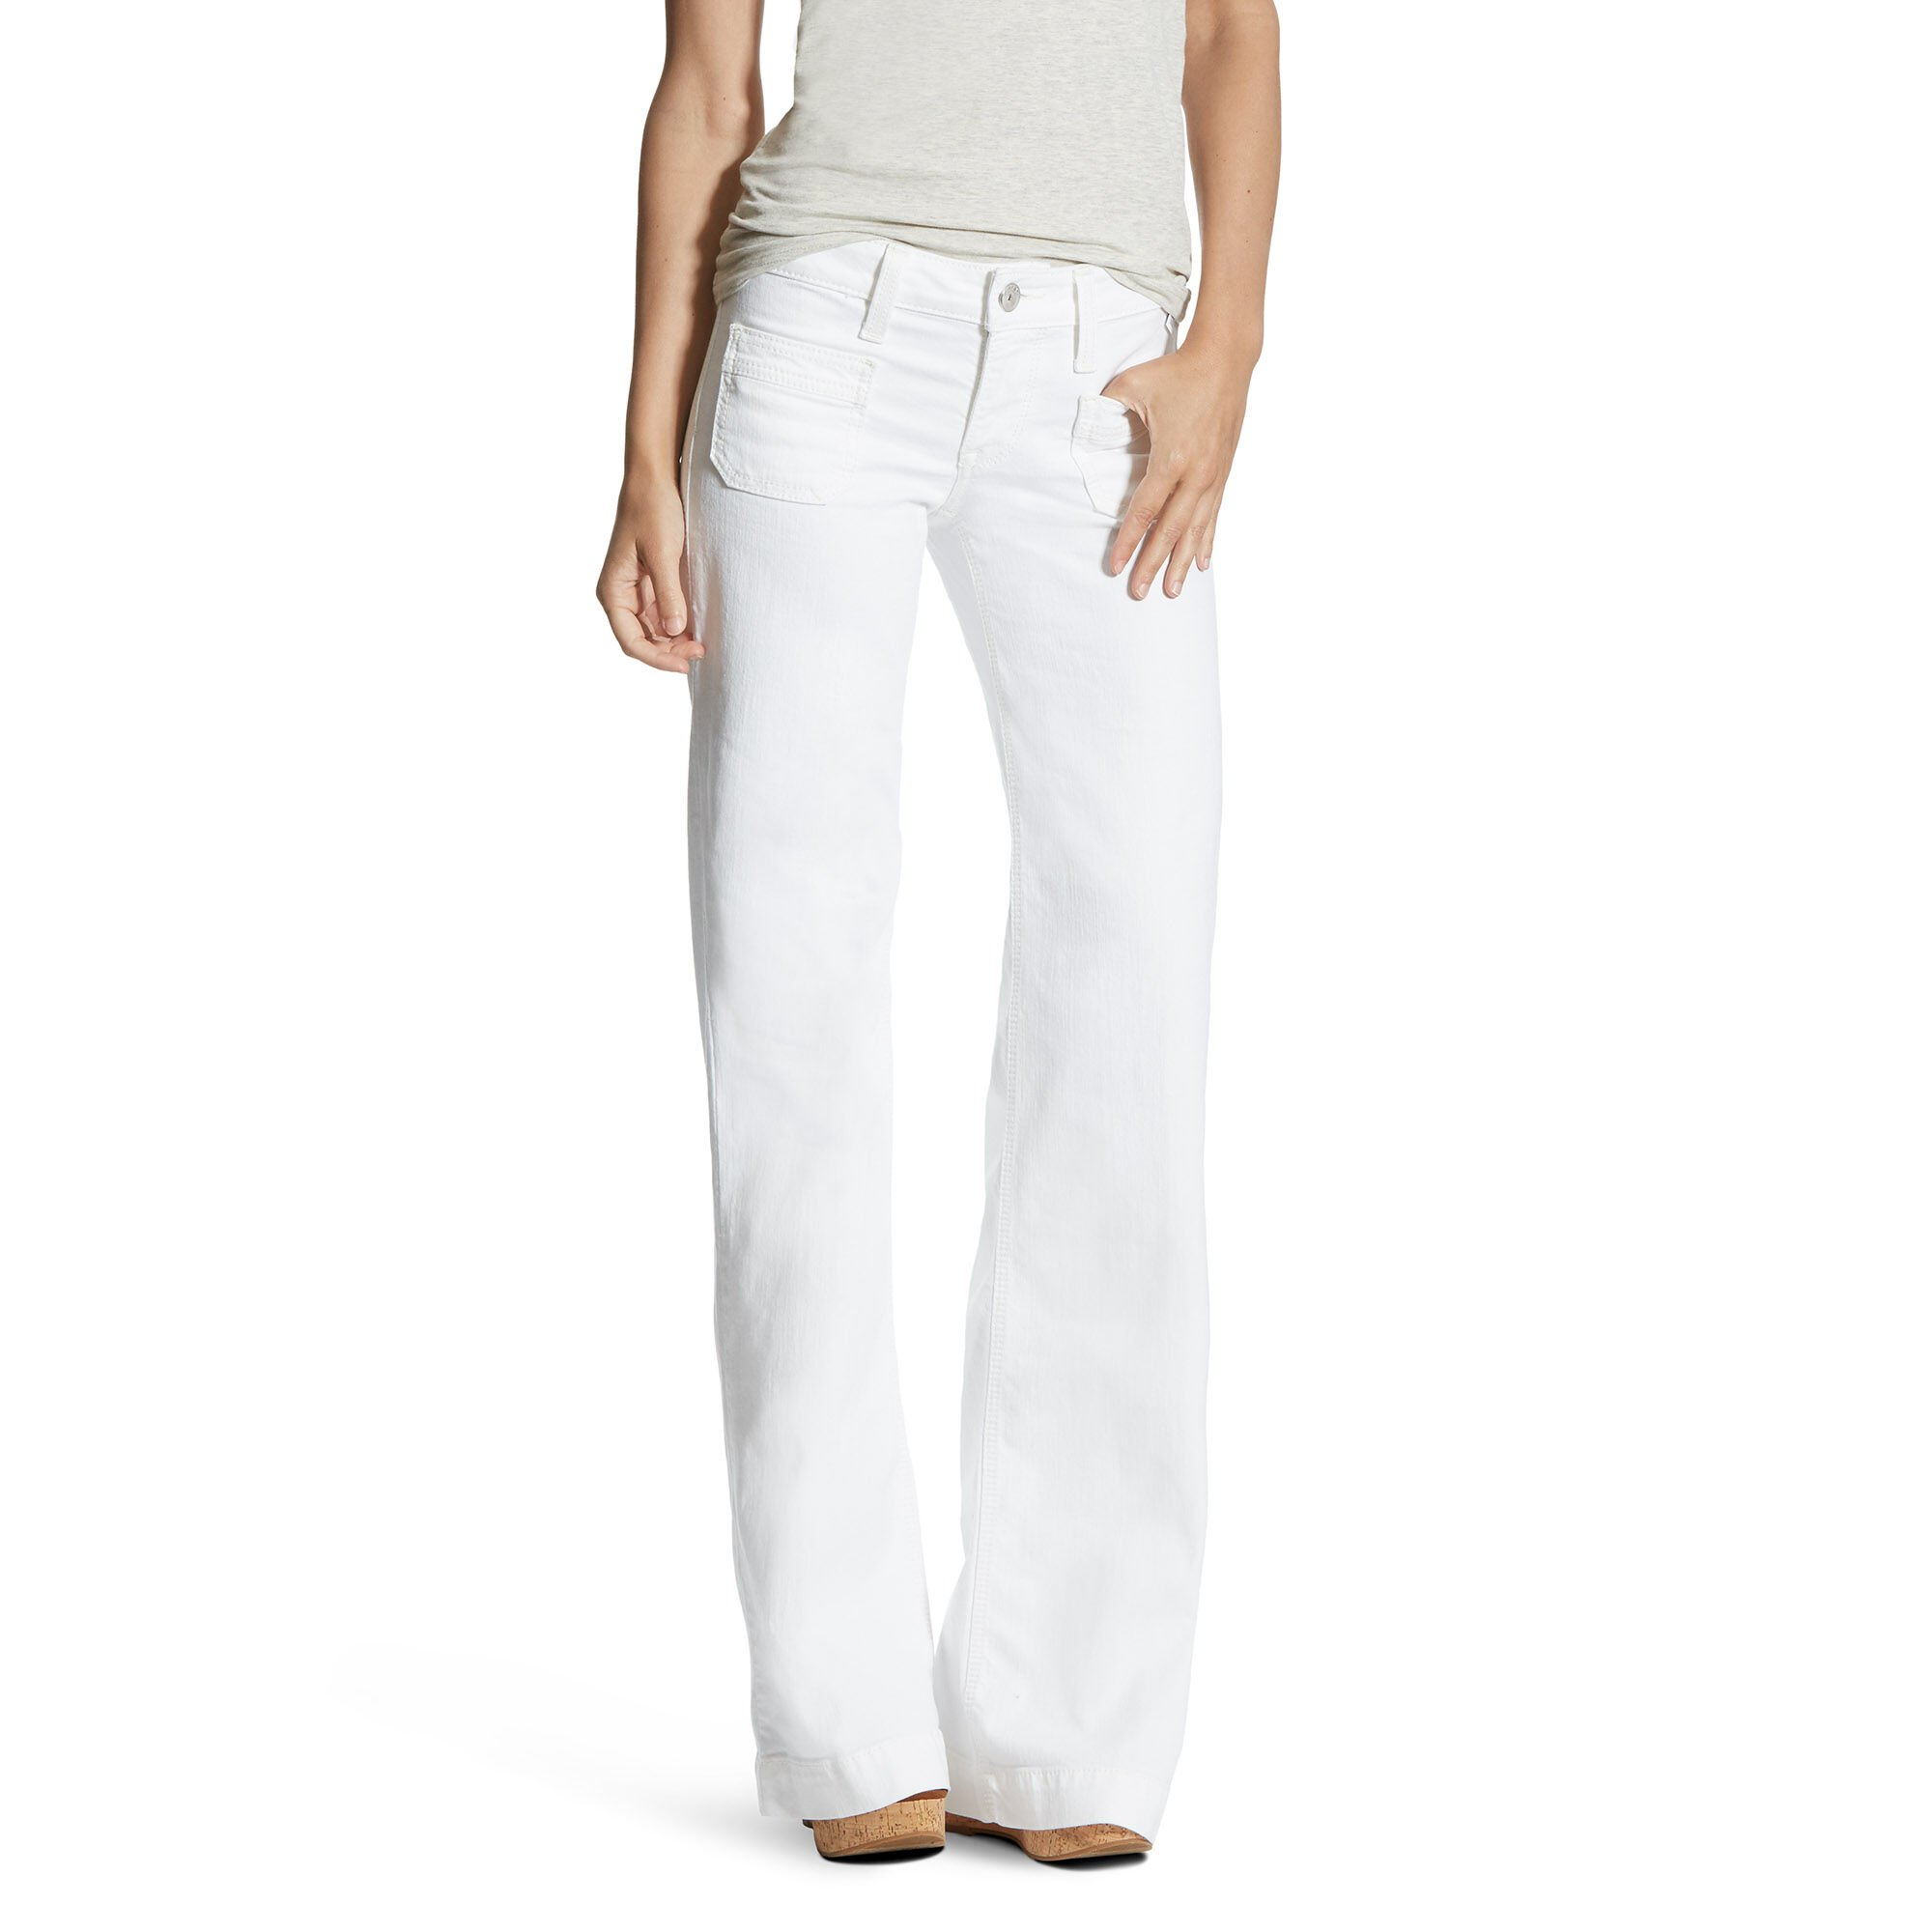 Dawn White Wide Leg Trouser Jean